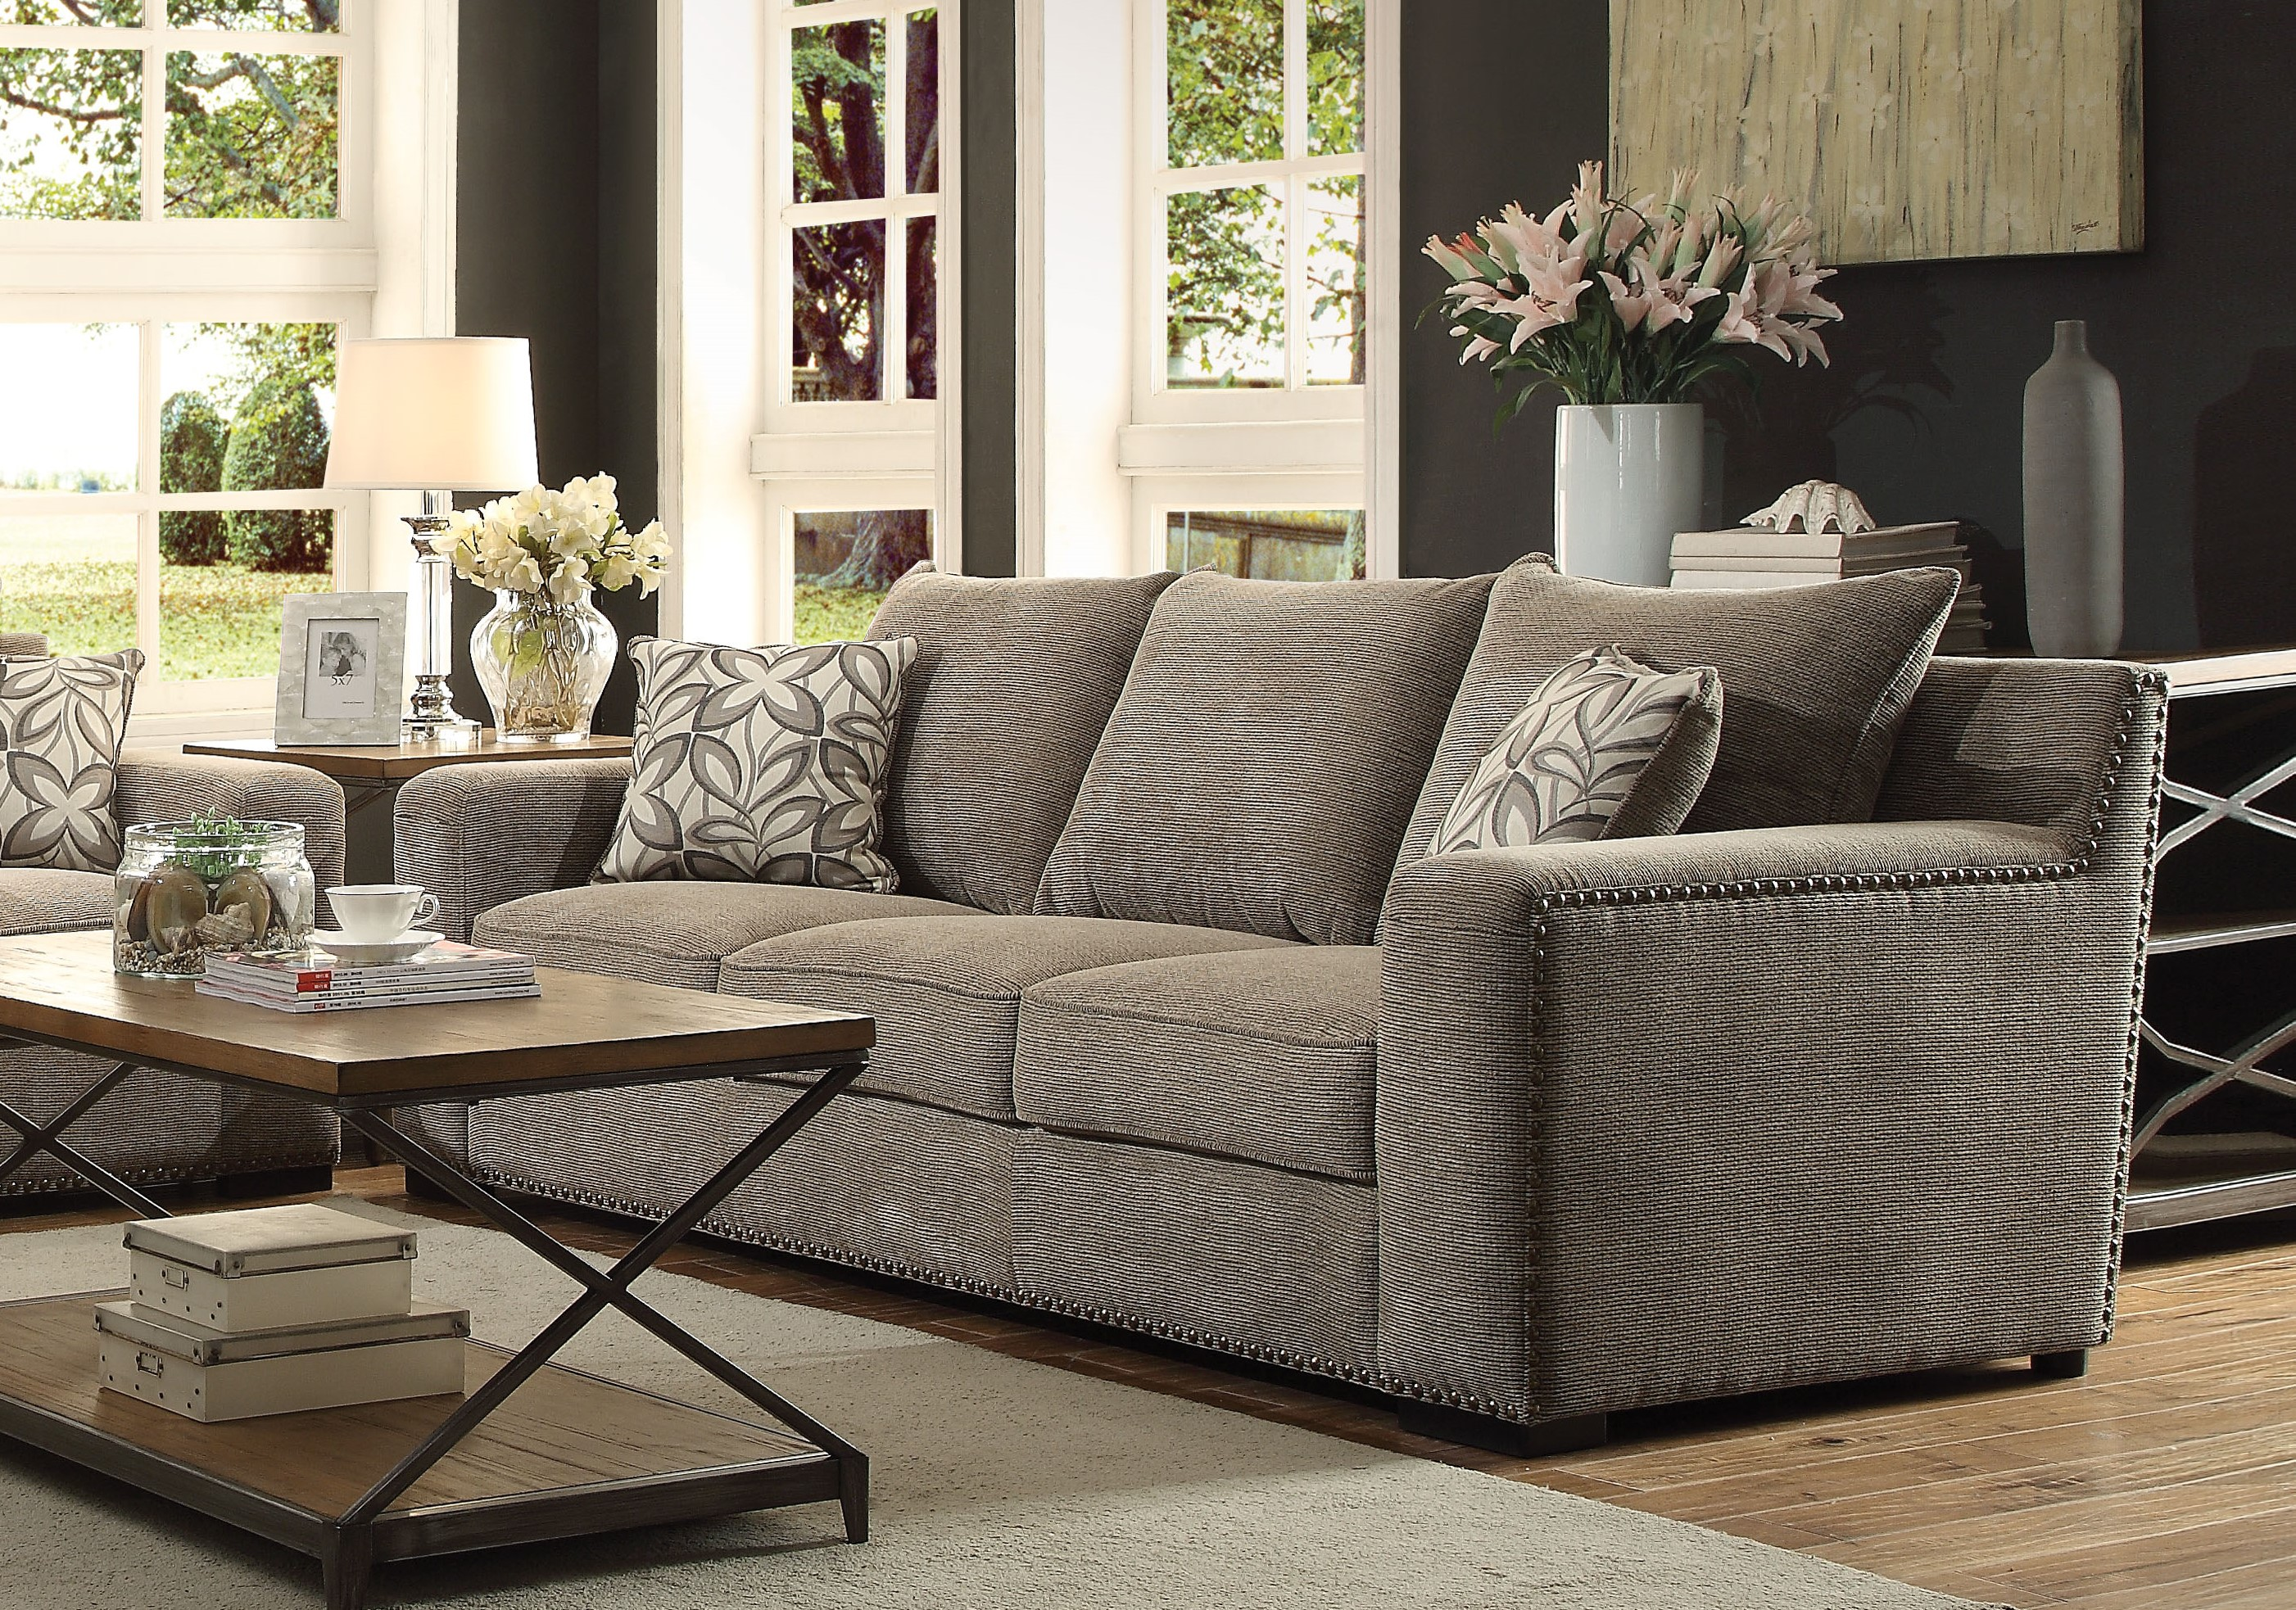 ACME Ushury Down Feather Sofa With 2 Pillows In Gray Chenille